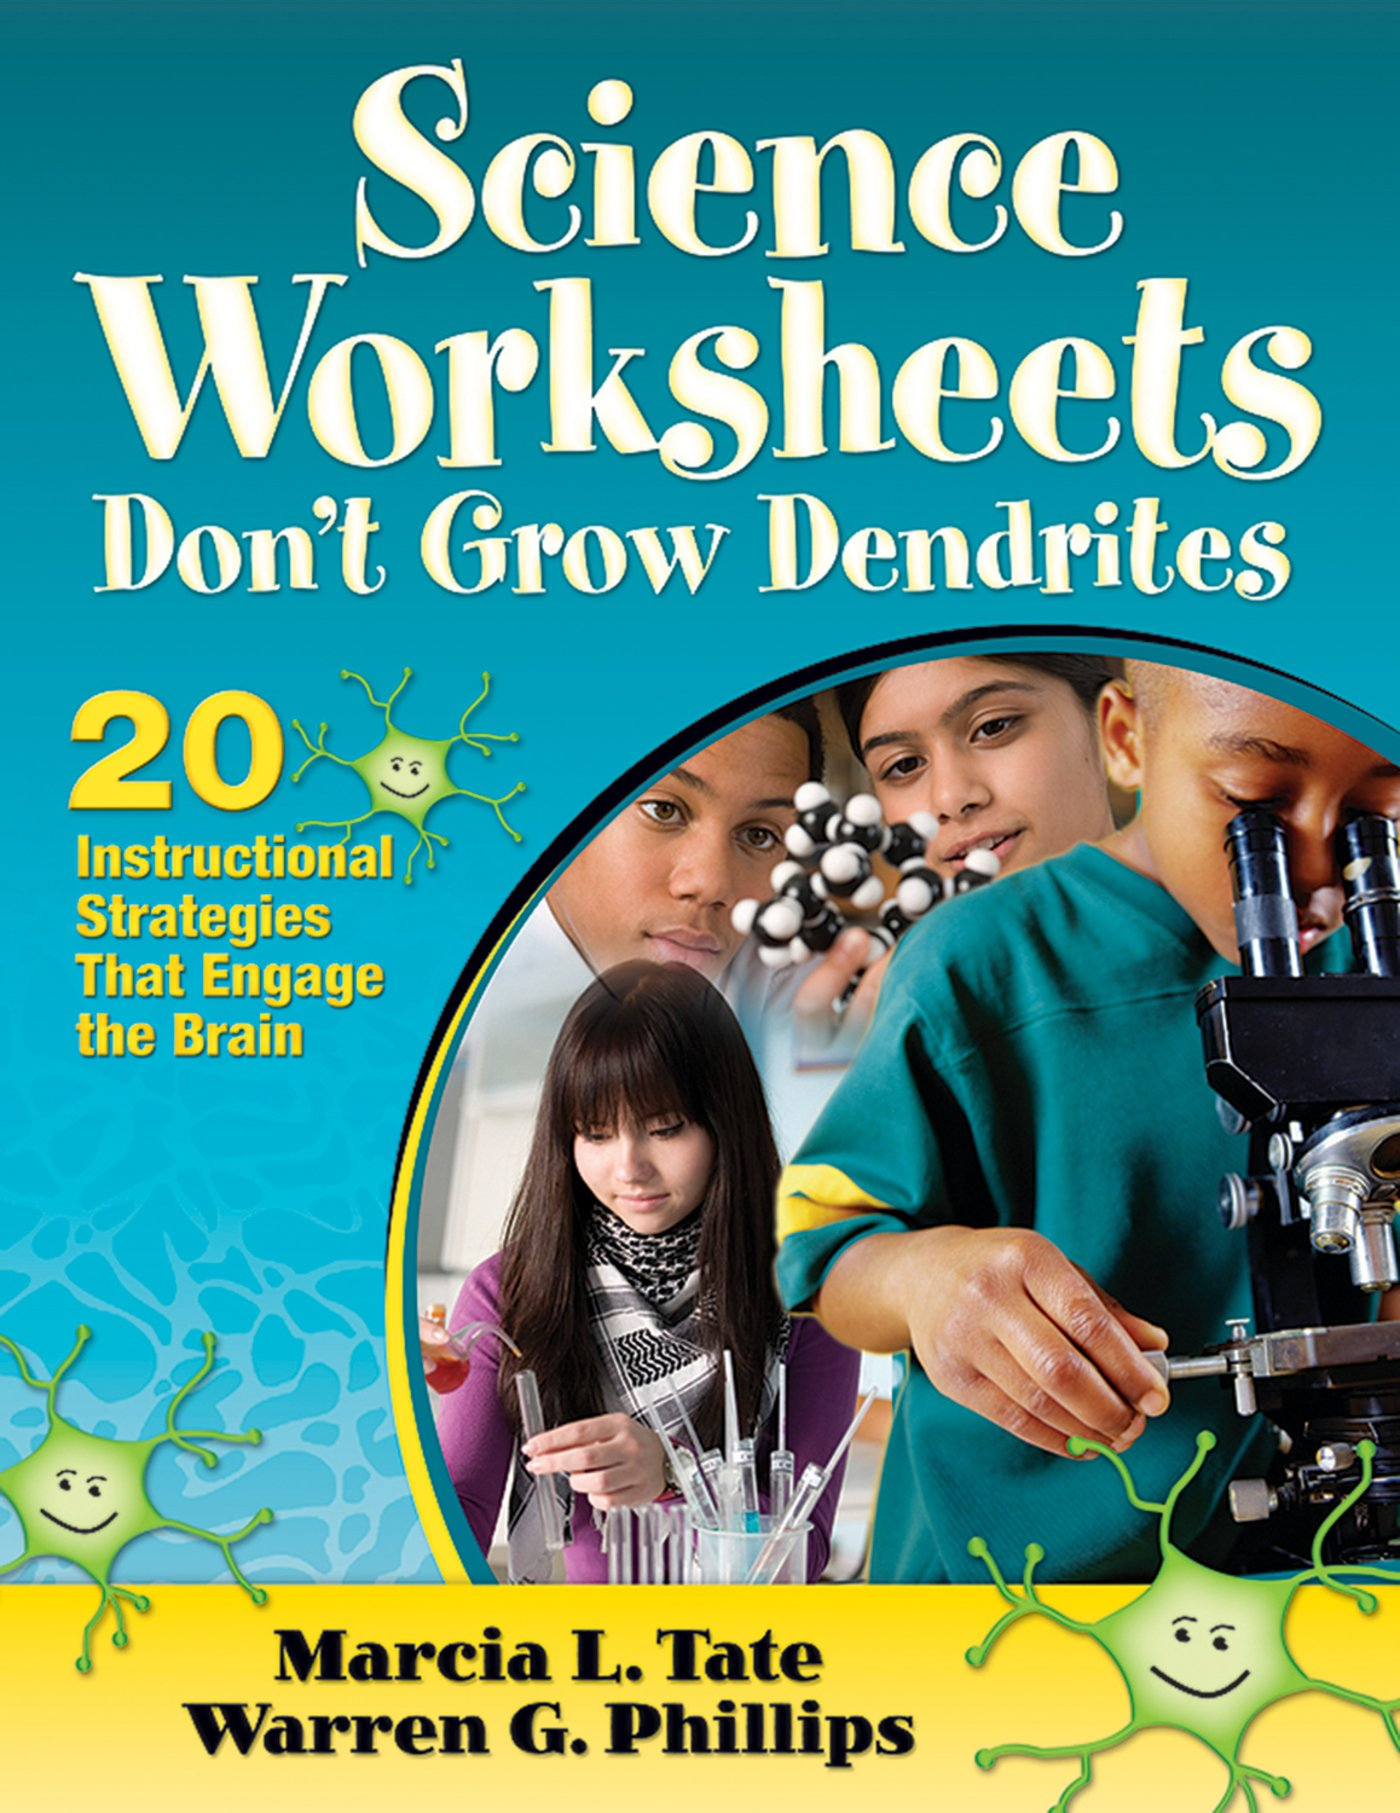 Worksheets Worksheets Don T Grow Dendrites science worksheets dont grow dendrites 20 instructional strategies that engage the brain marcia l tate warren g phillips